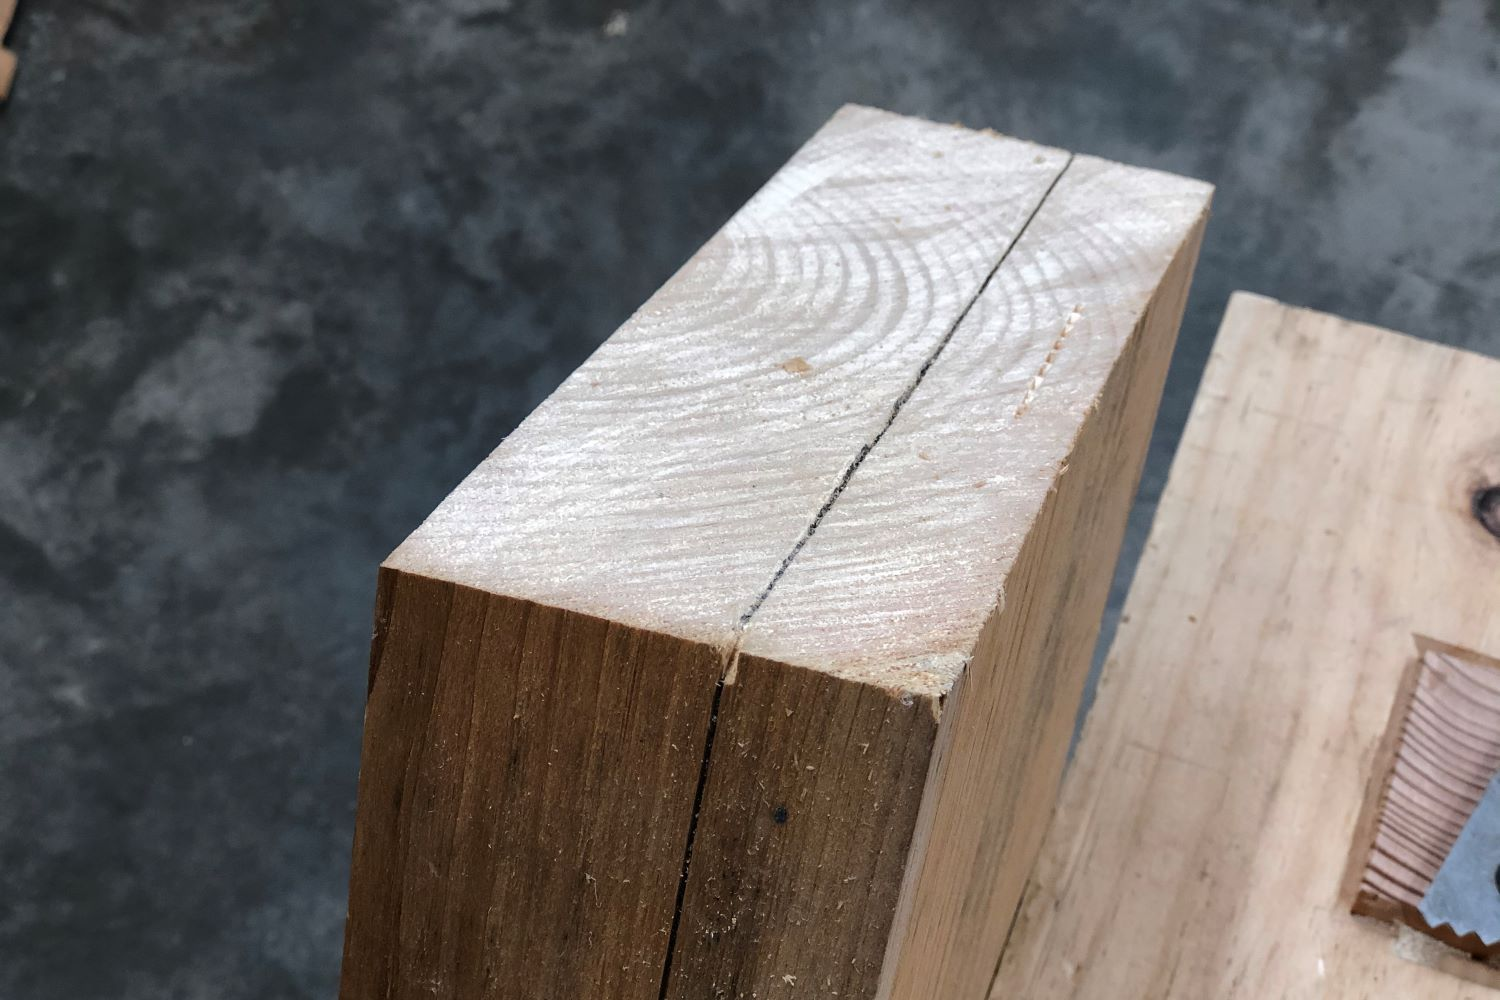 Saw without sawing exercise results